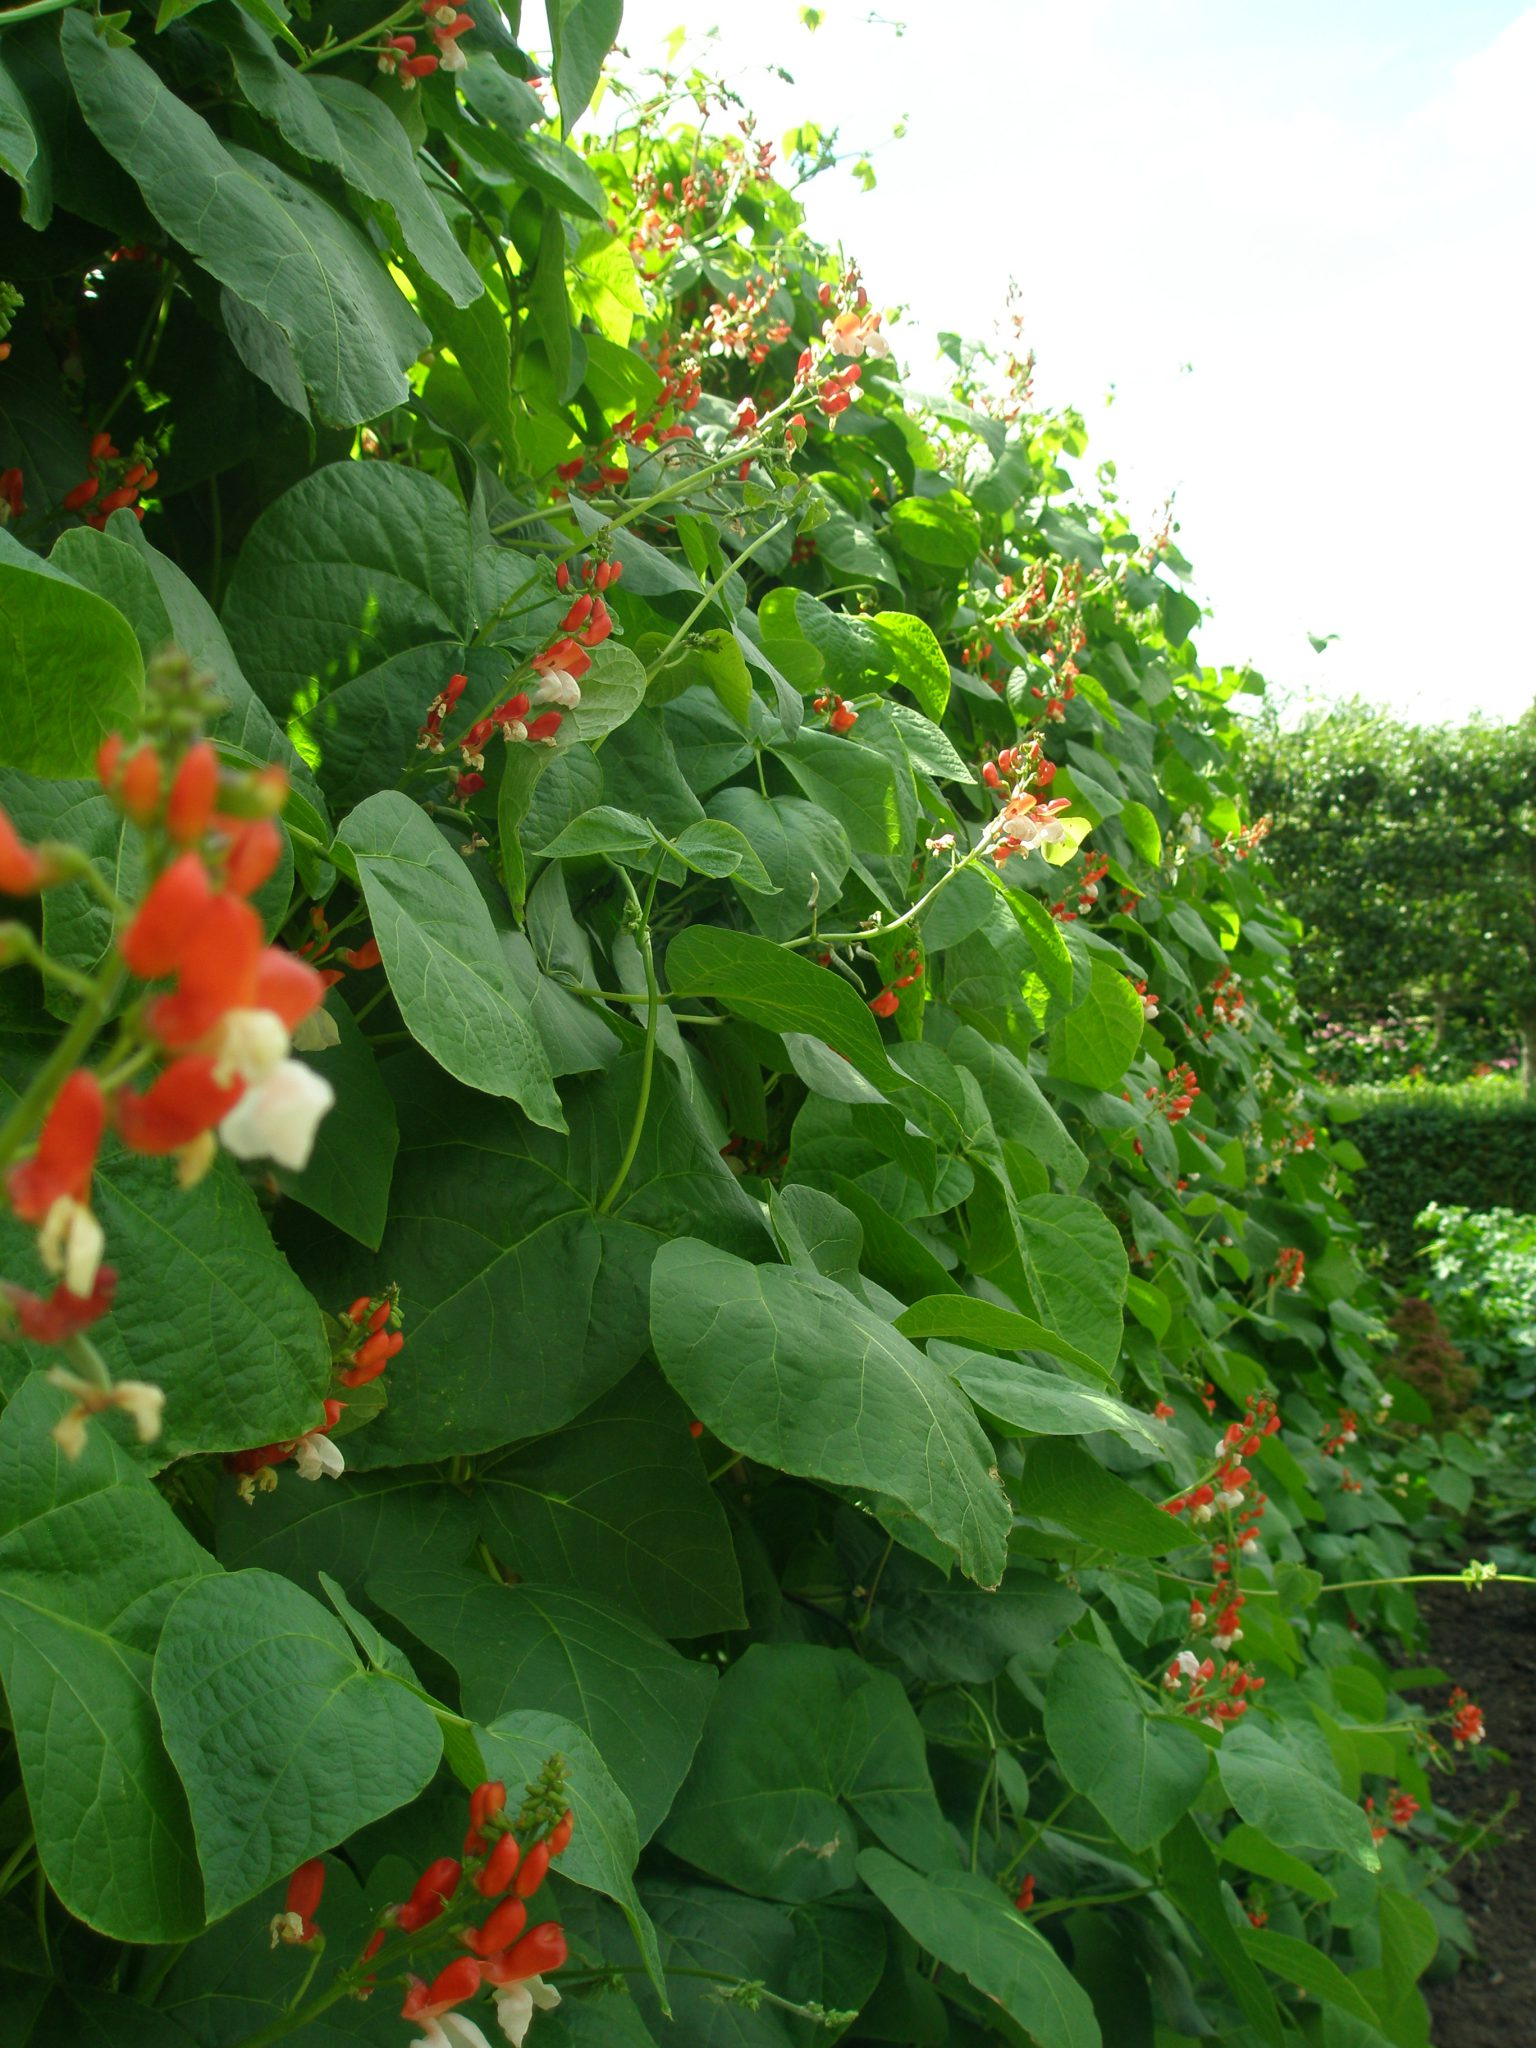 Scarlet Runner Beans clamber up the Potager's brick wall, which was built in 1720.